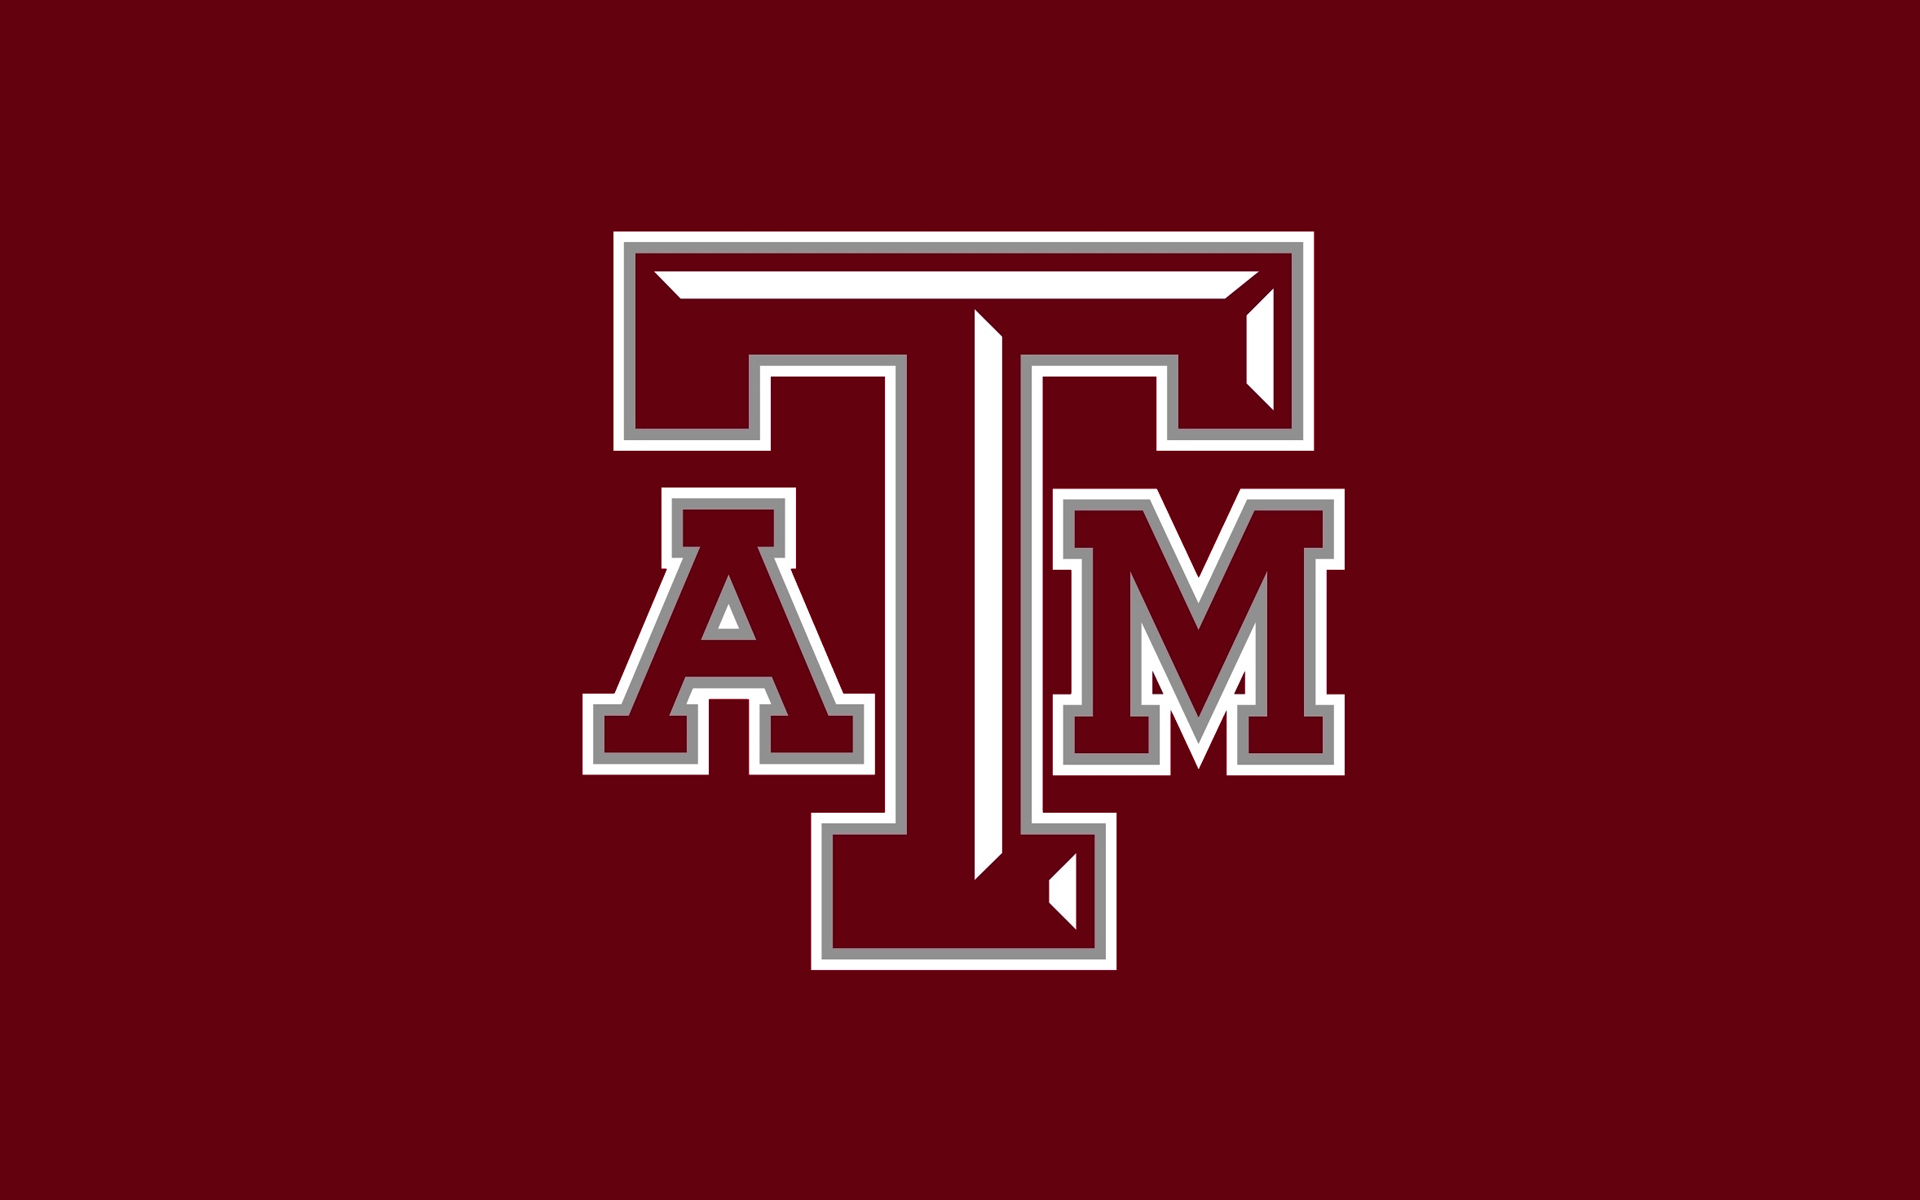 Texas a m background image - Jpg 1920x1200 Aggies Background